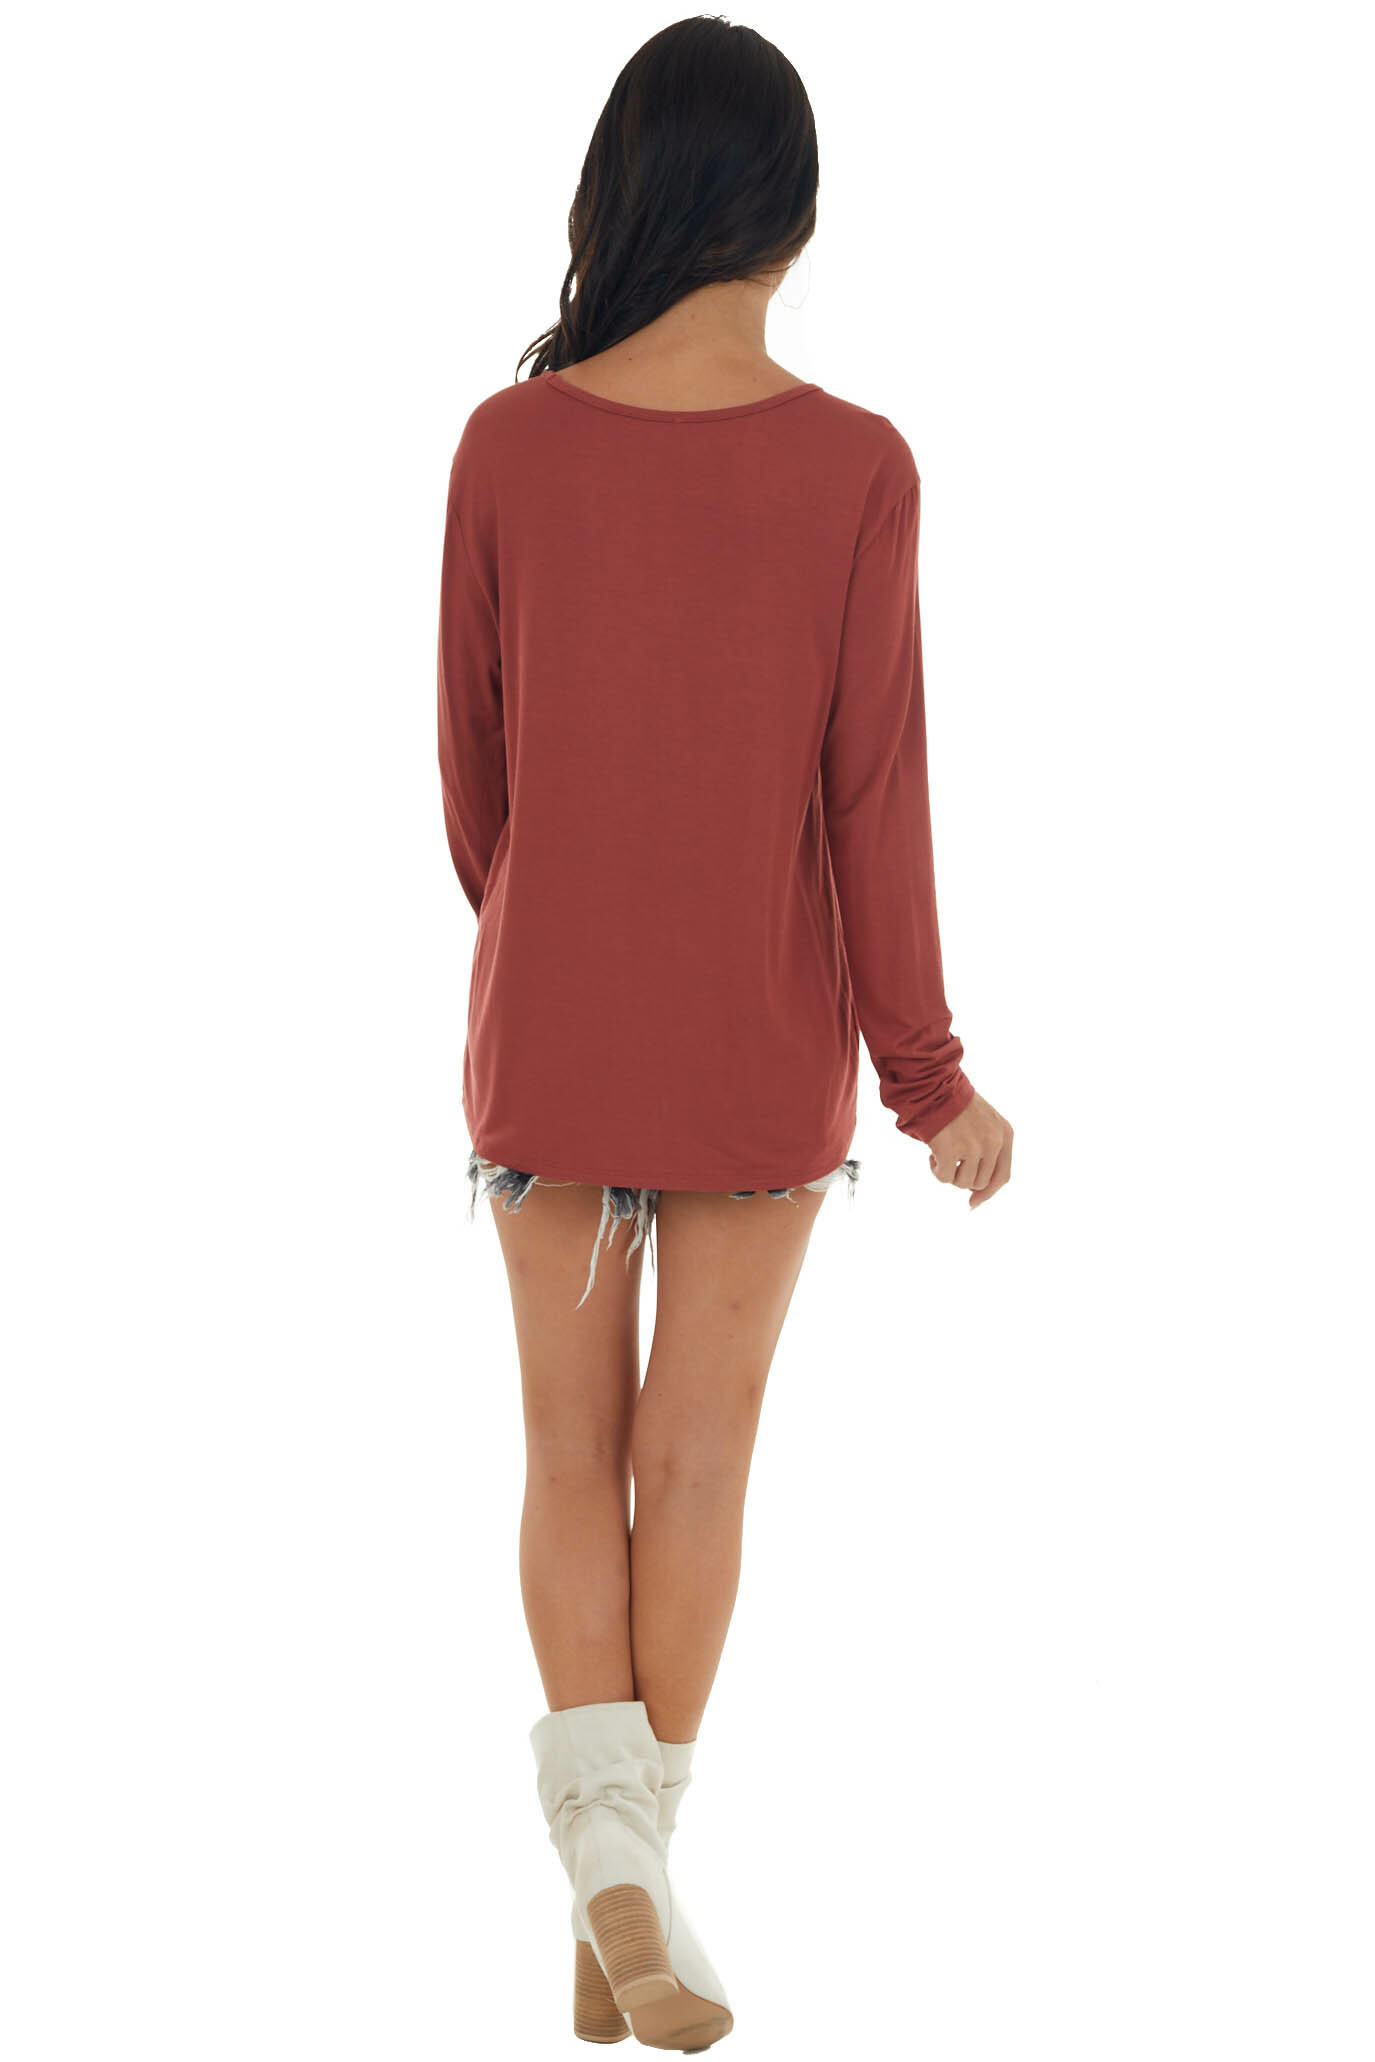 Dark Rust Long Sleeve V Neck Cut Out Knit Top